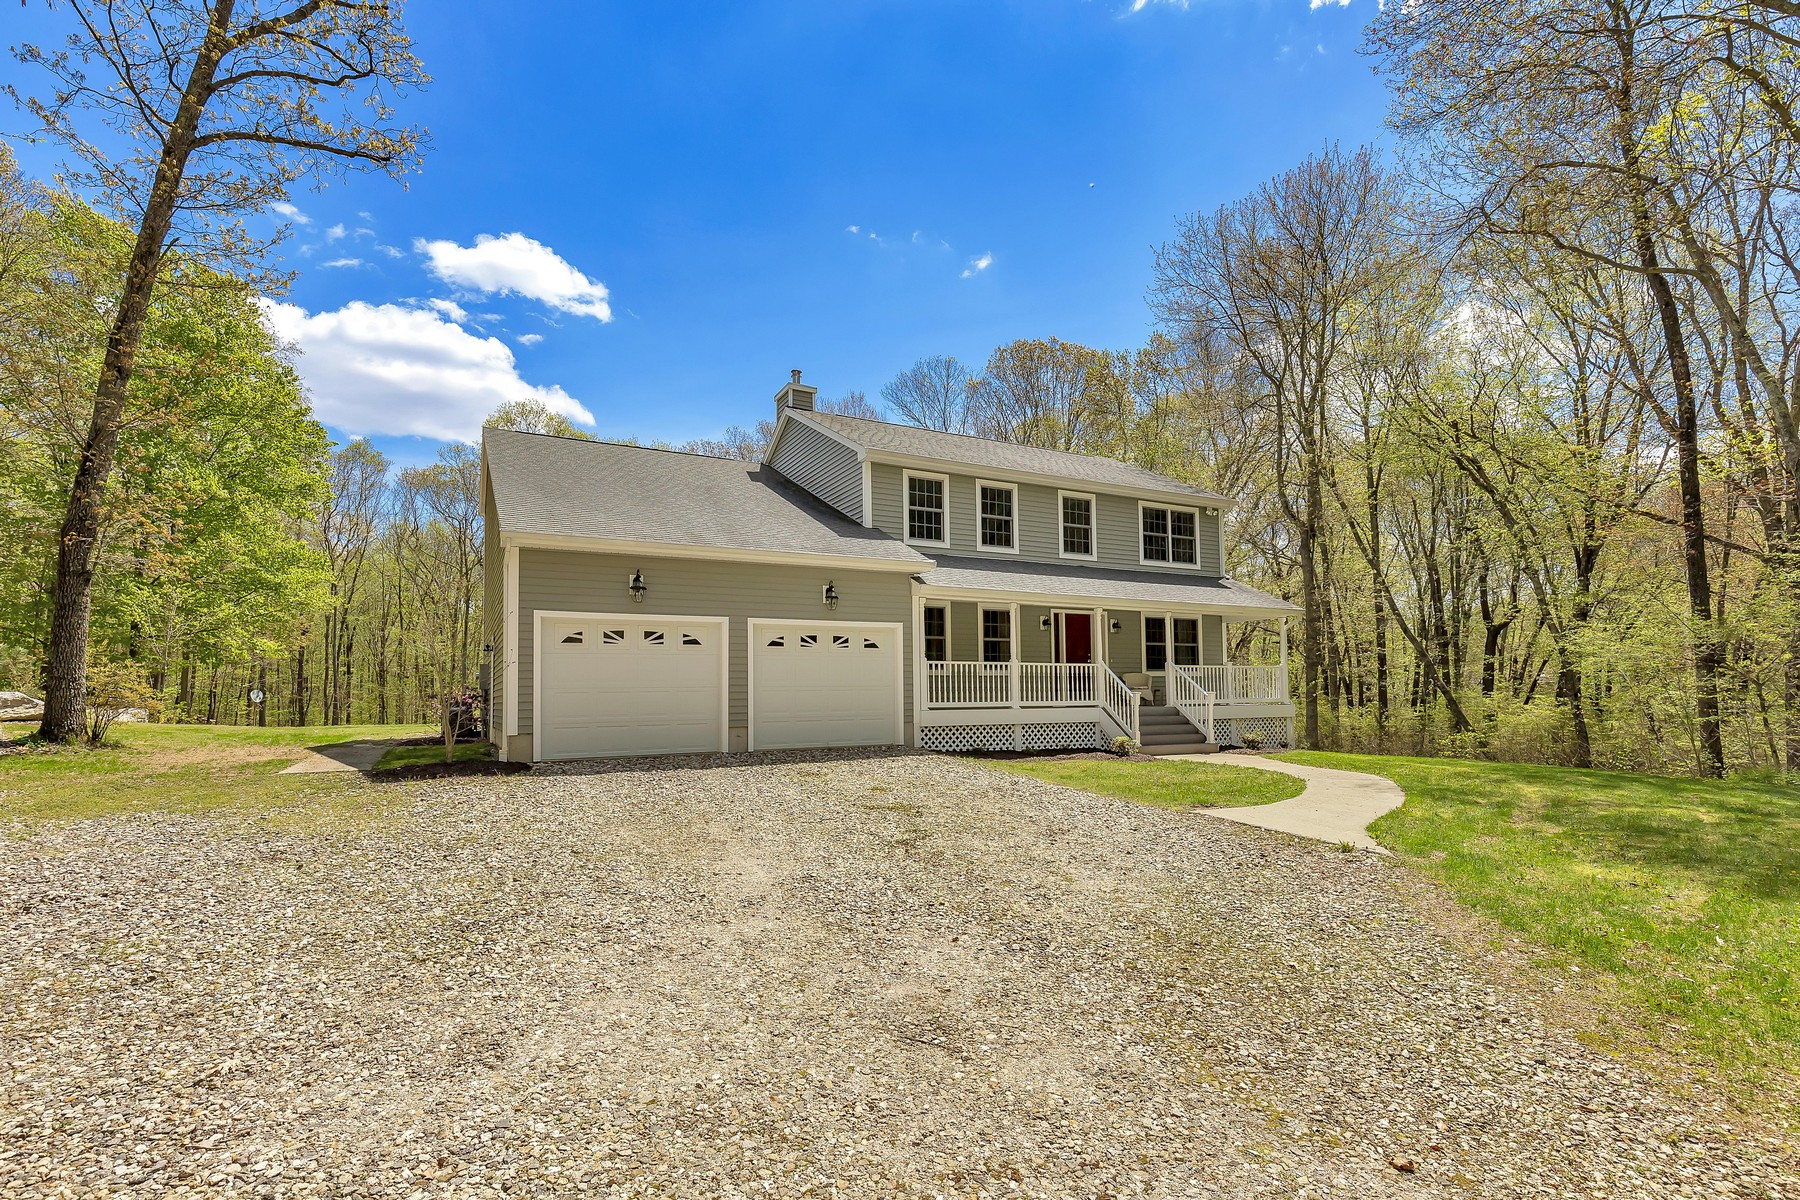 single family homes for Sale at Custom Designed Home On 3.64 Tranquil Acres 358 Bozrah St, Bozrah, Connecticut 06334 United States